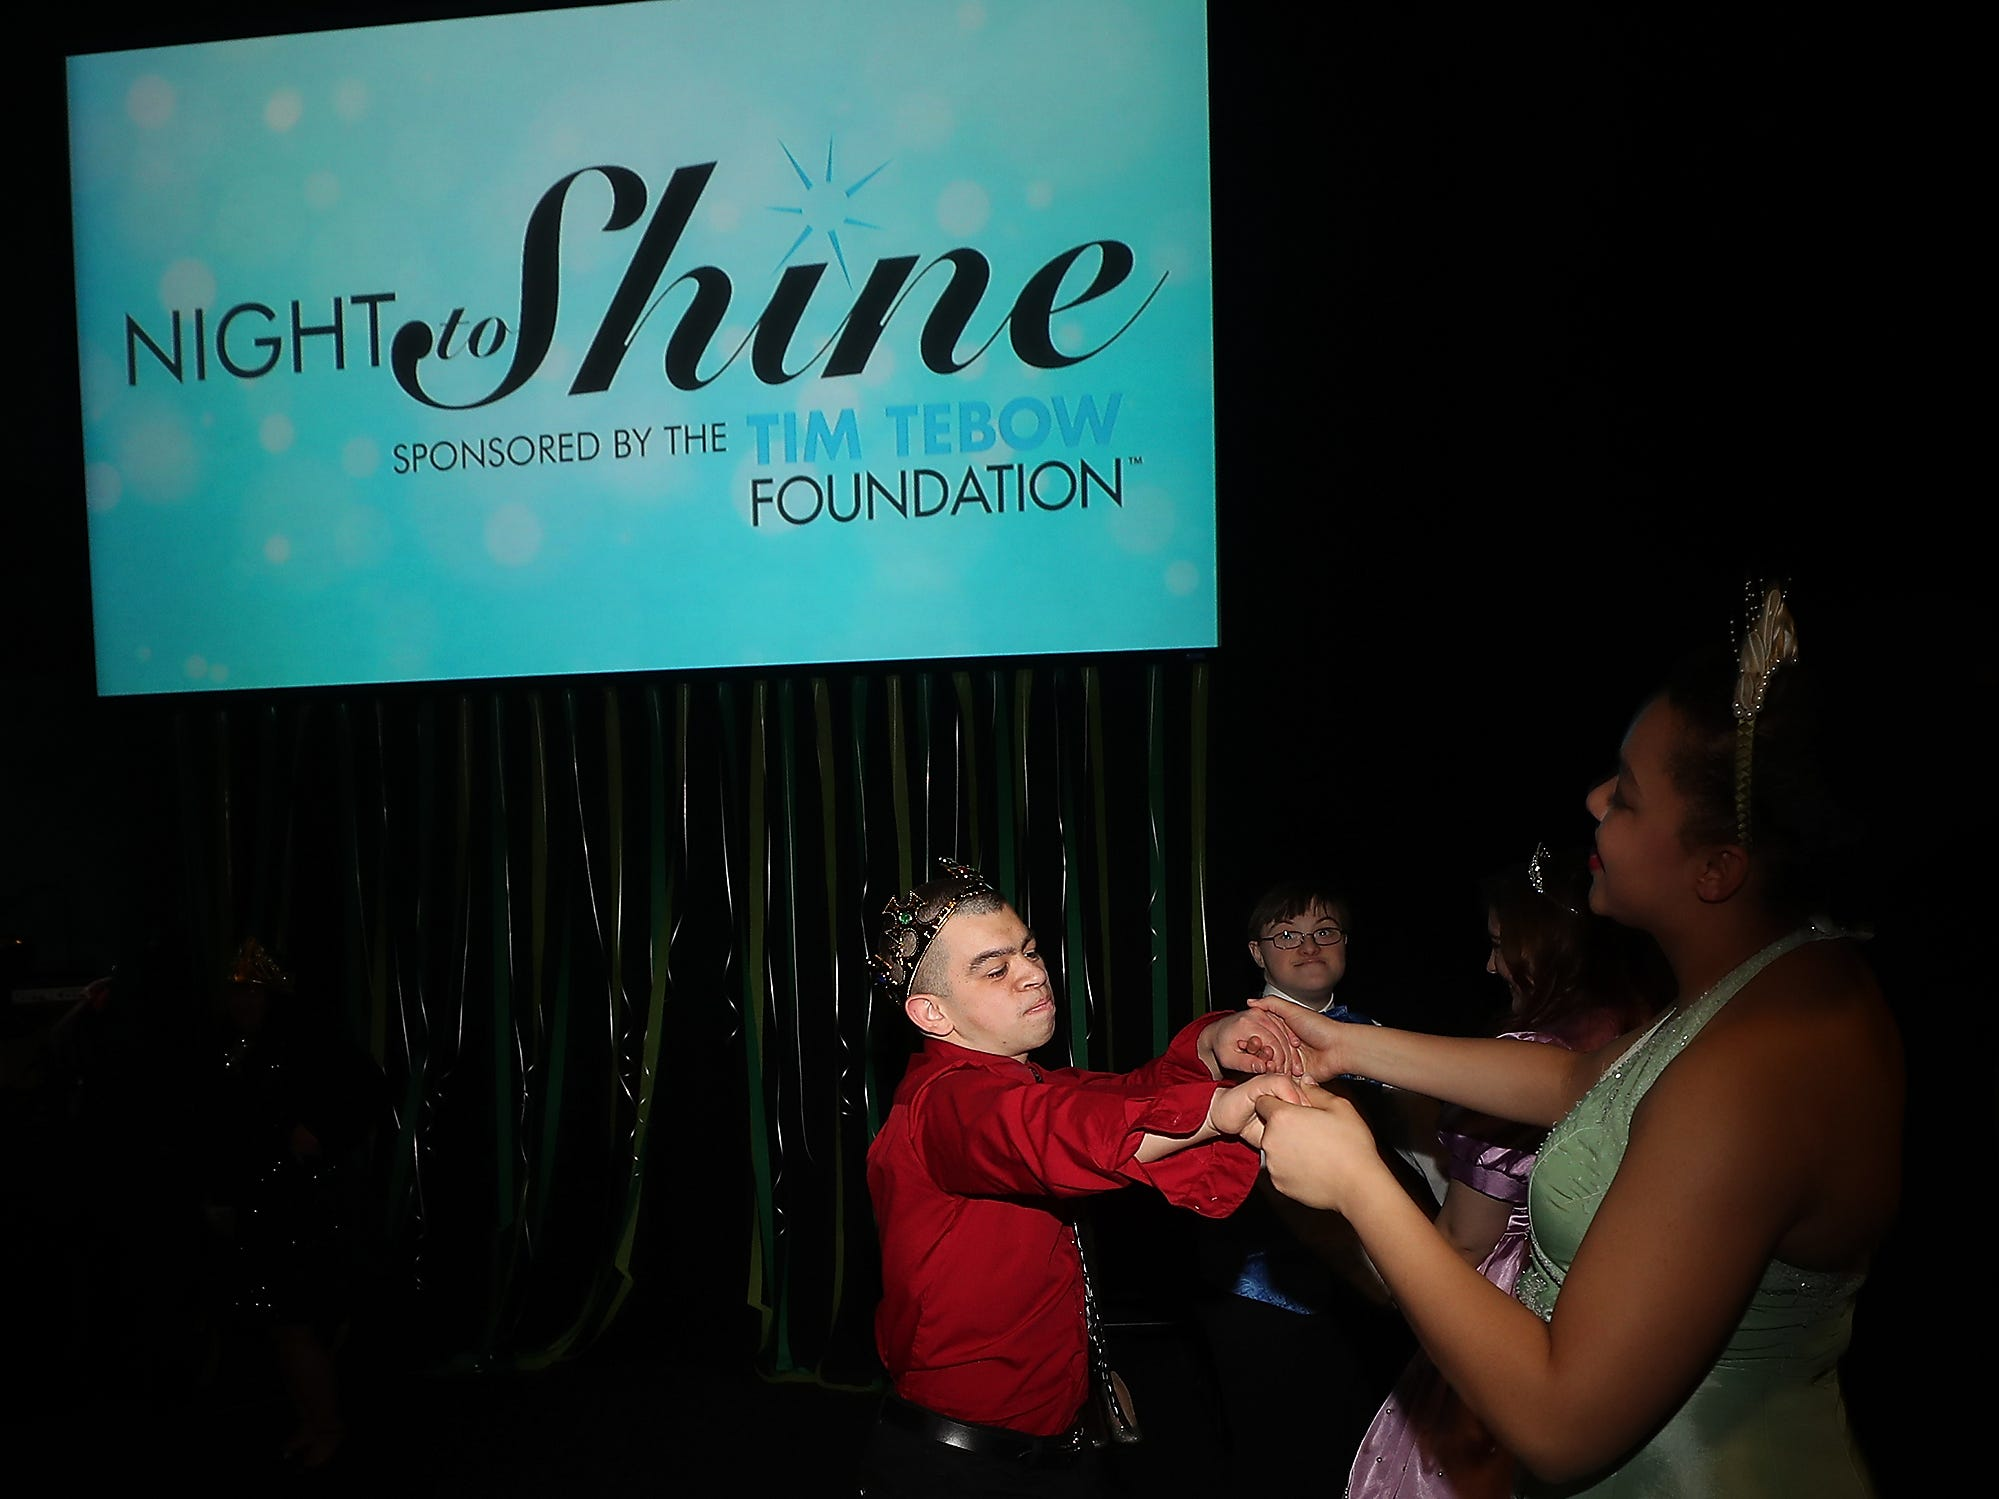 Night To Shine at the newlife Training & Events Center in Silverdale on Friday, March 8, 2019.